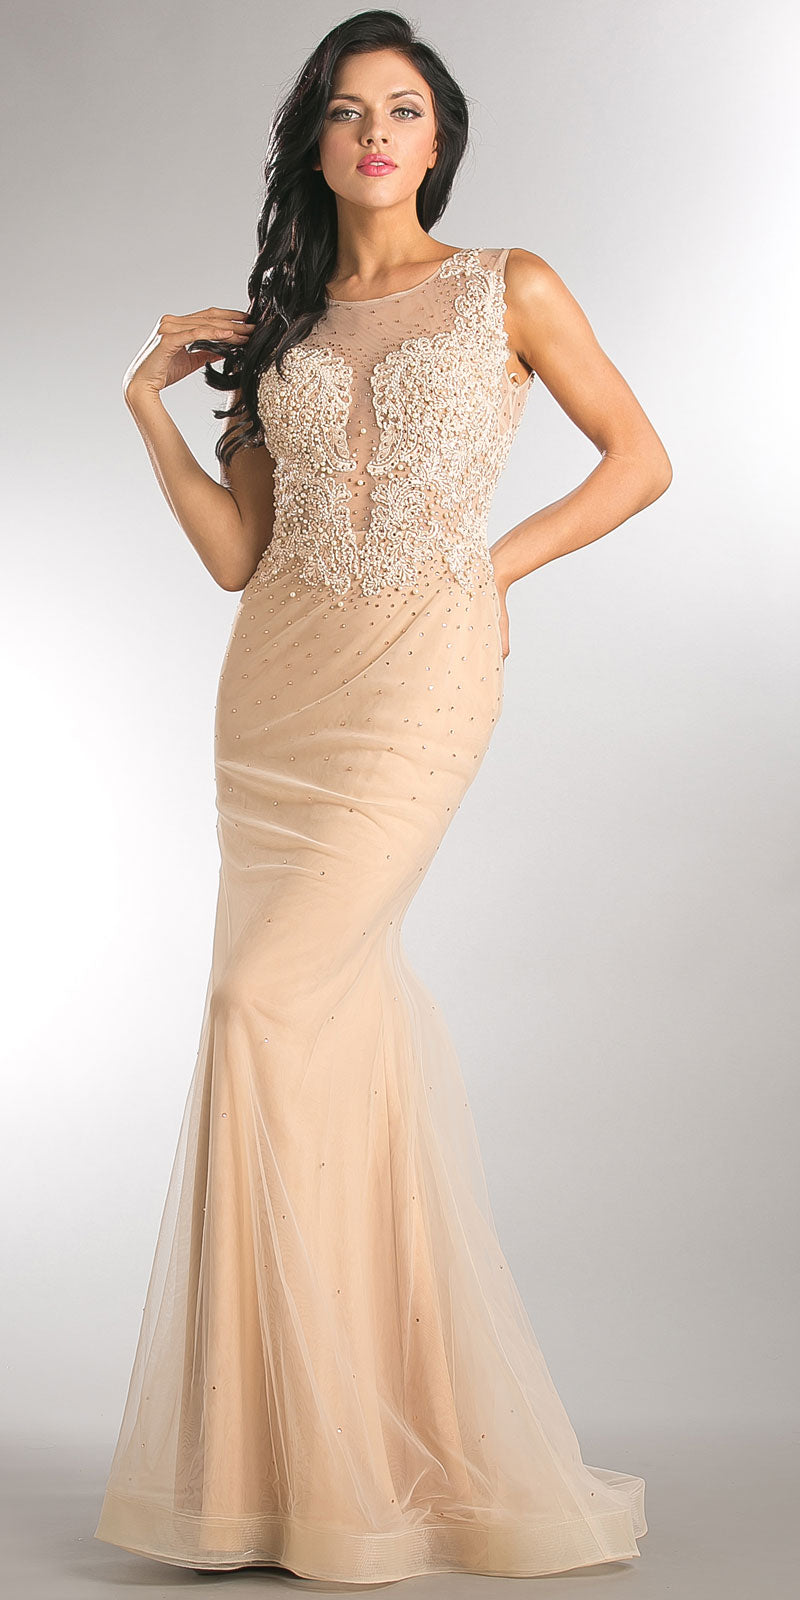 Main image of Embroidered Lace Top Mesh Tulle Long Prom Pageant Dress